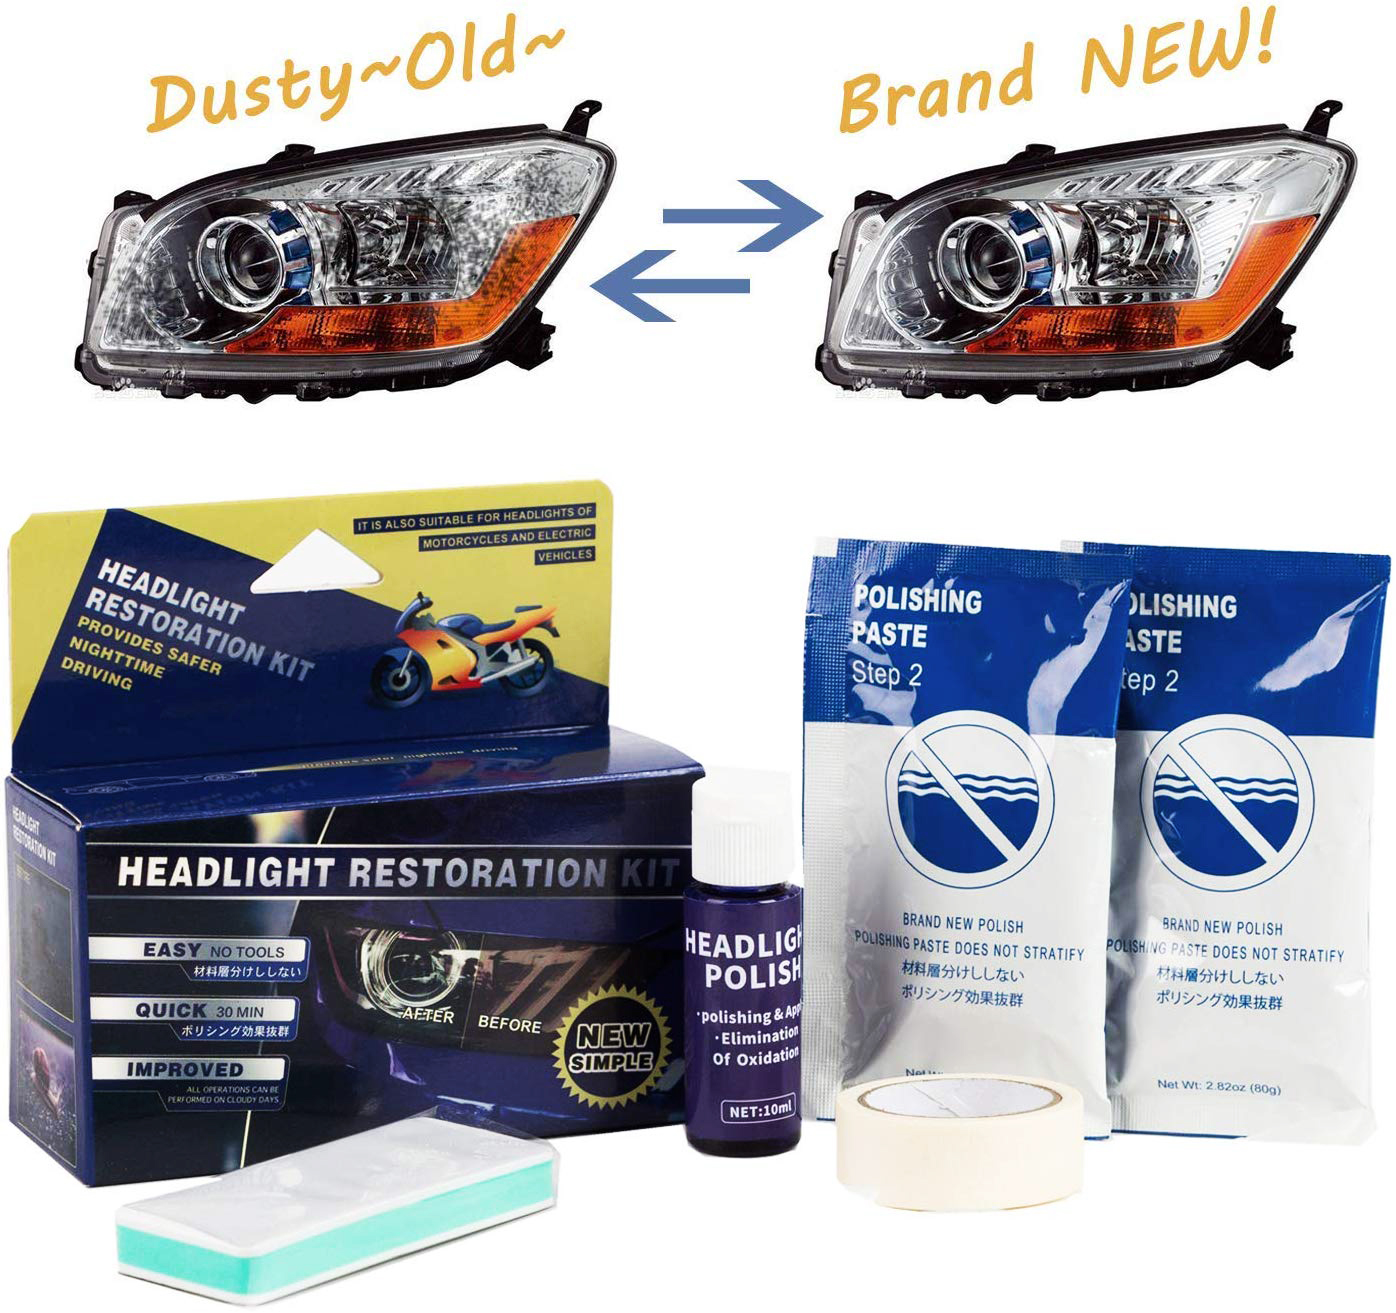 Headlight Restoration Repair Kit for Renault Clio Cloudy Yellowish Lens